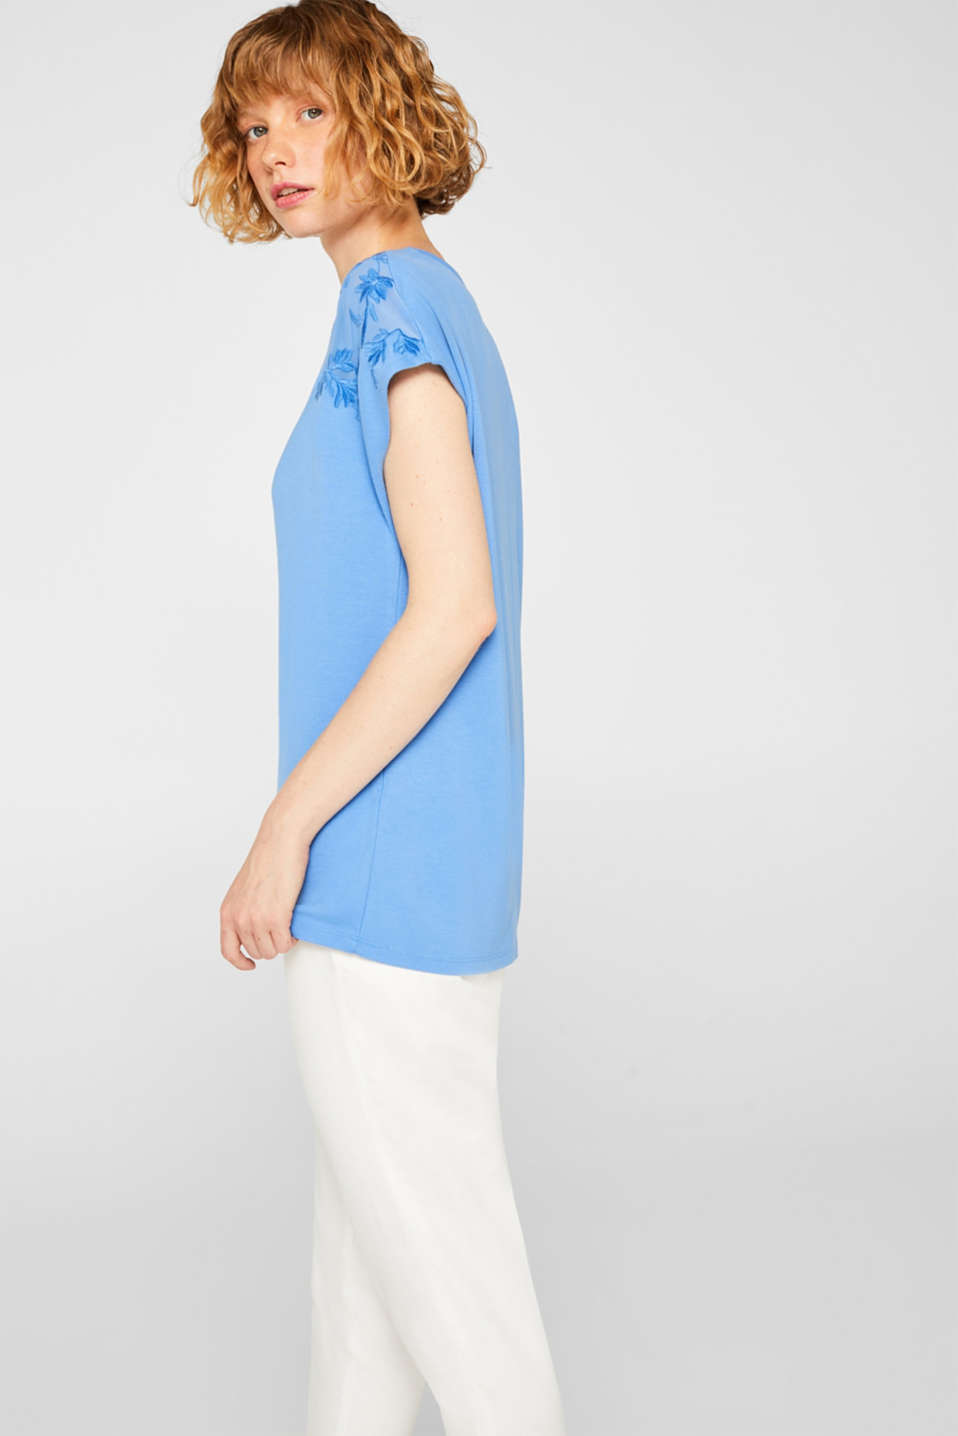 Stretchy top with embroidered mesh details, BLUE, detail image number 5